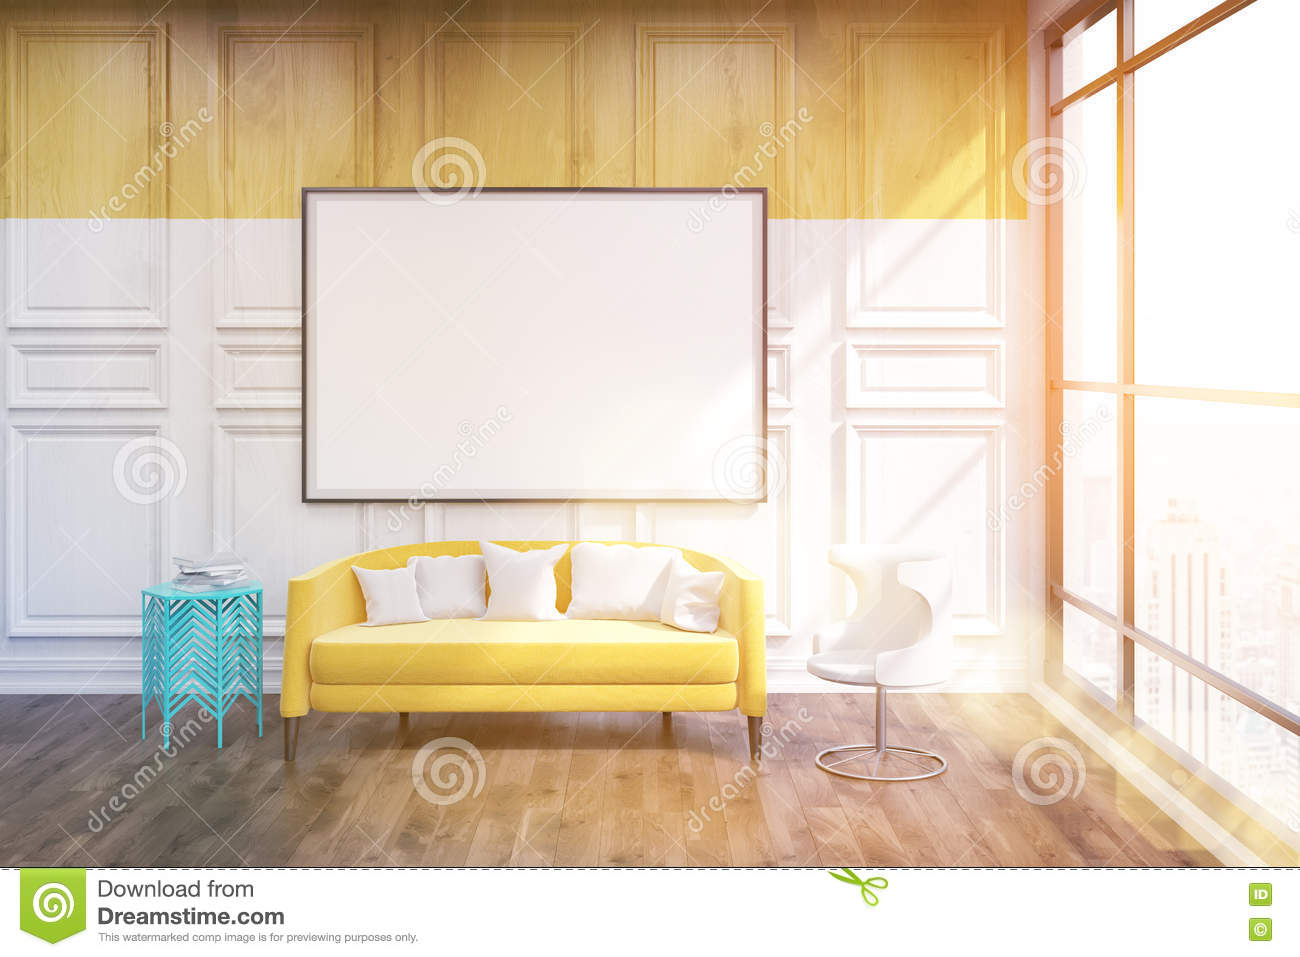 Sofa Cartoons Illustrations Vector Stock Images 24909 Pictures To Download From